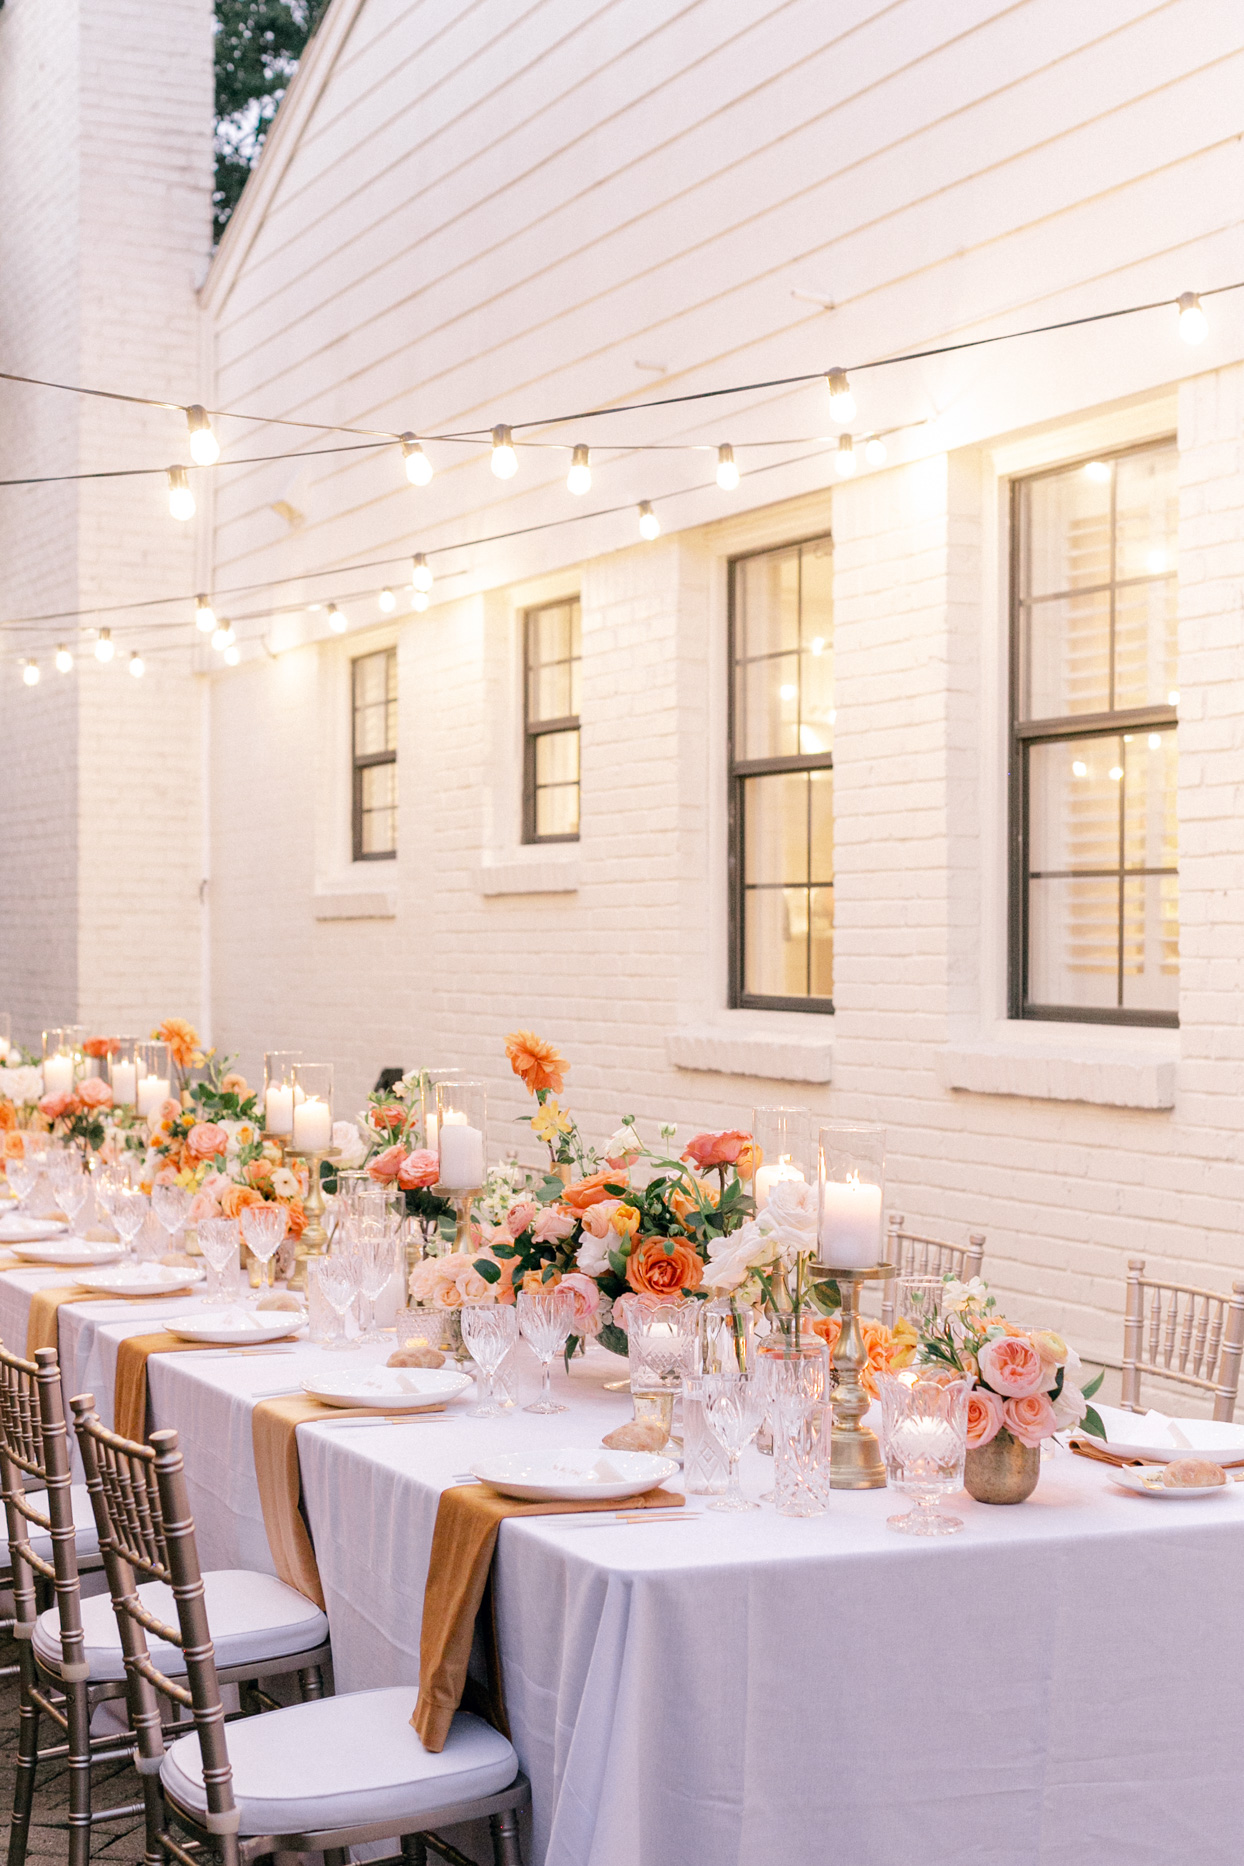 wedding reception table set up on side of house with string lights above